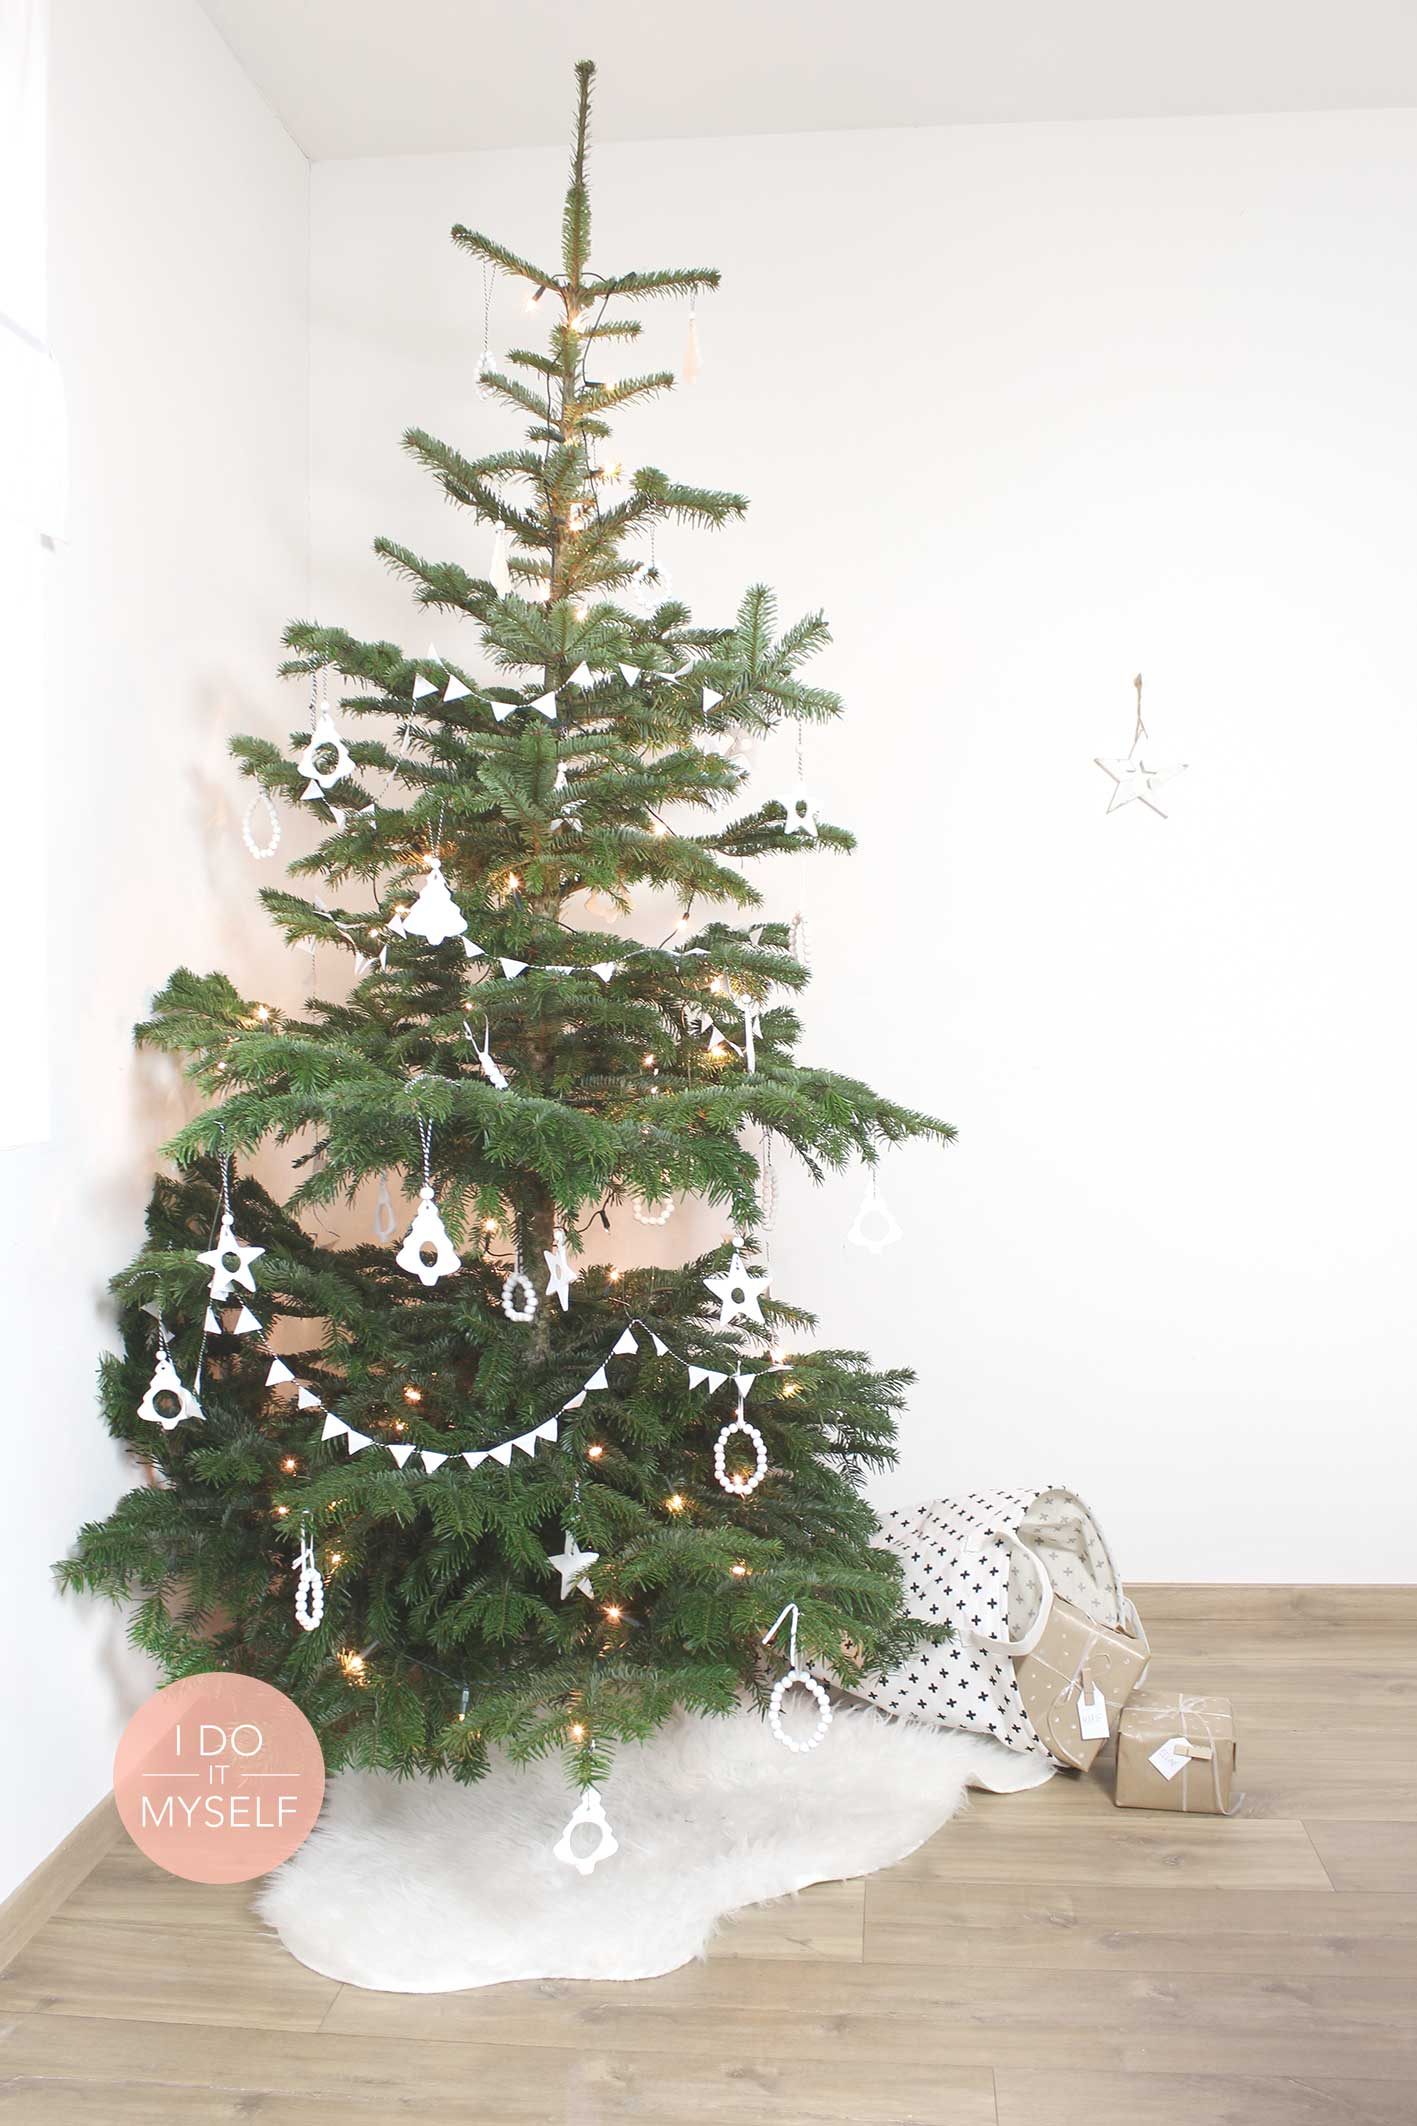 Diy 44 un sapin de no l diy i do it myself - Sapin de noel diy ...